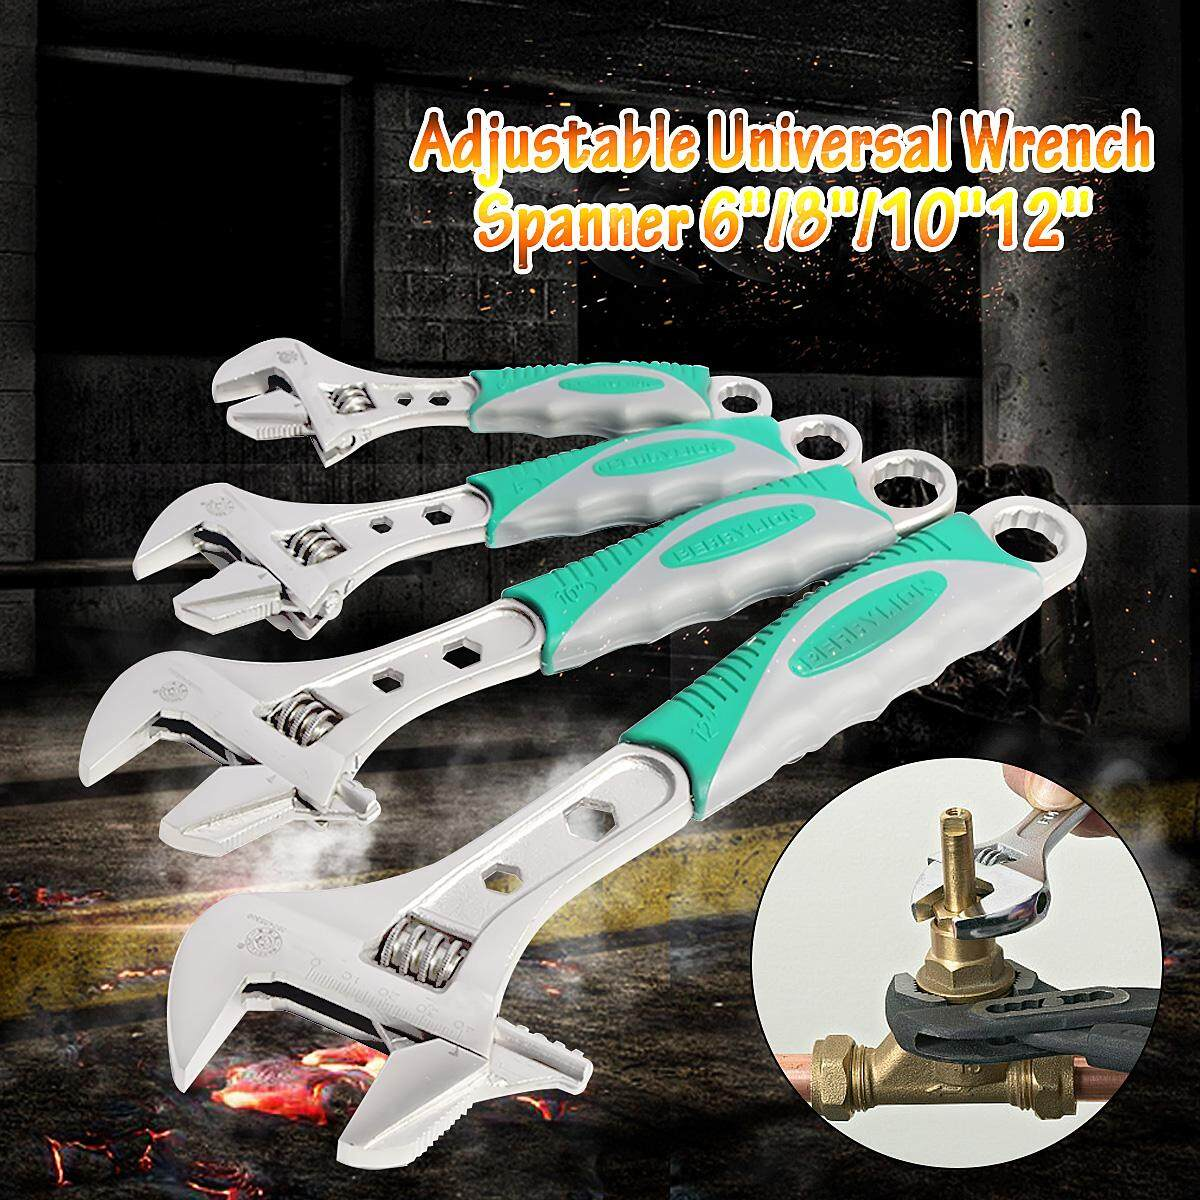 【Free Shipping + Super Deal + Limited Offer】BERRYLION Adjustable Universal Wrench Spanner 6/8/10/12Inch Wrench Set 6/8/10/12 inch